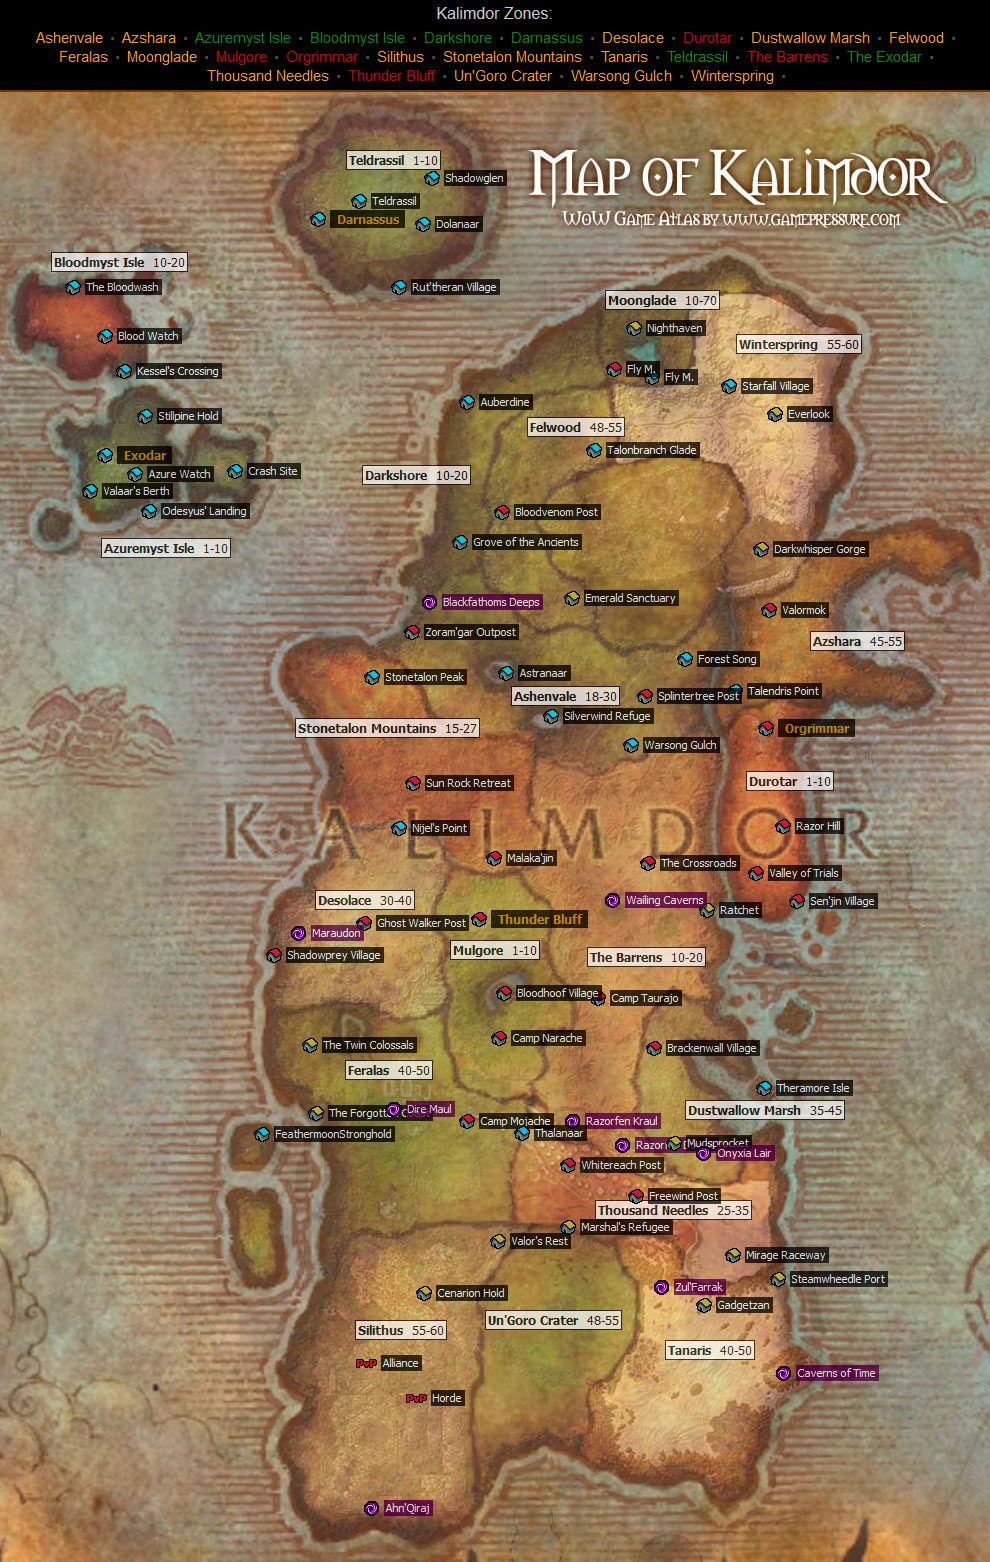 Kalimdor map from world of warcraft from wowmepressure kalimdor map from world of warcraft from wowmepressure gumiabroncs Gallery